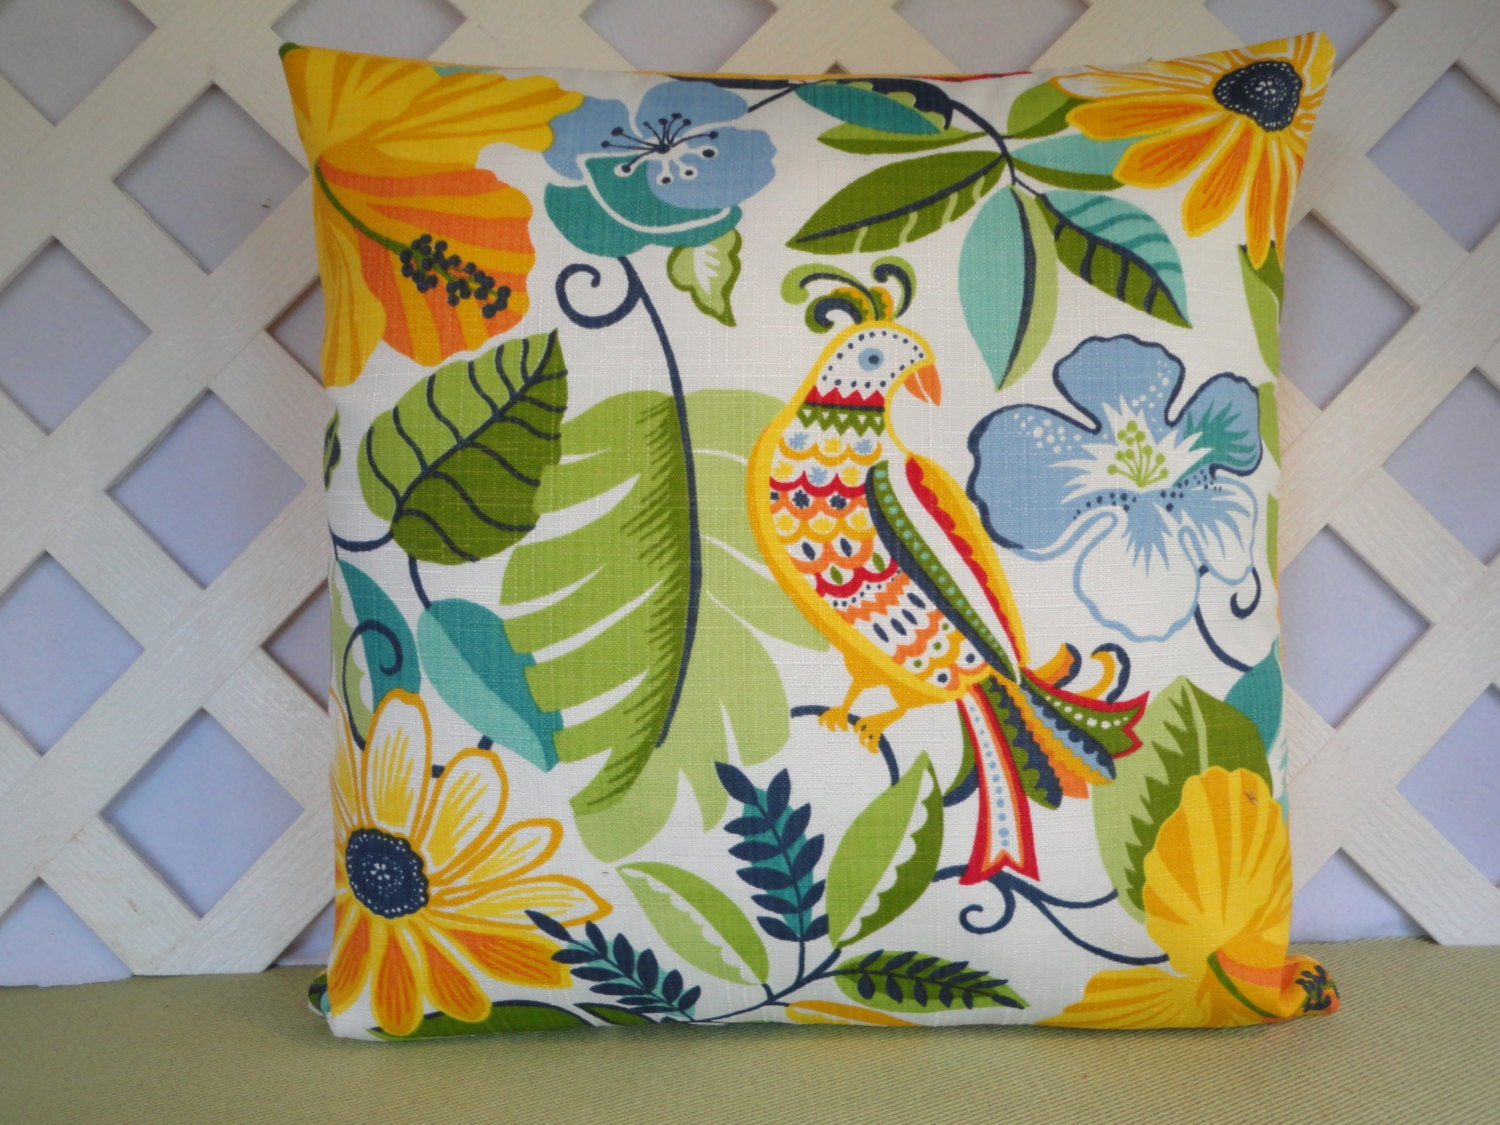 Floral And Bird Outdoor Pillow Cover In Yellow Blue Green